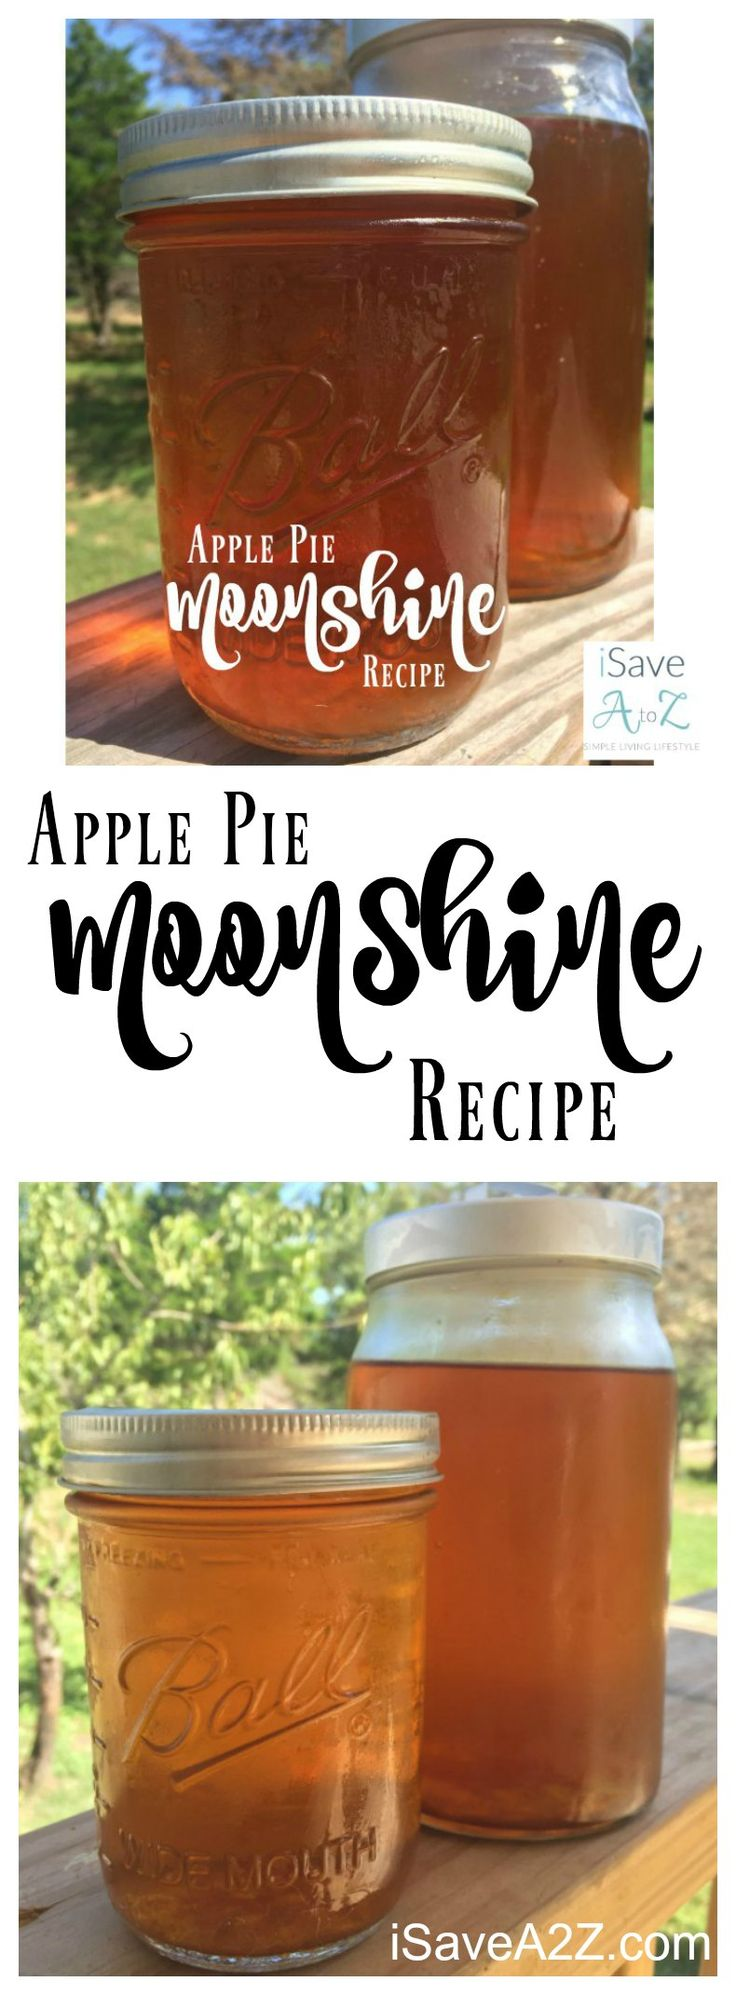 I know exactly why this recipe is so popular now!  YUMMY! Apple Pie Moonshine Recipe - iSaveA2Z.com